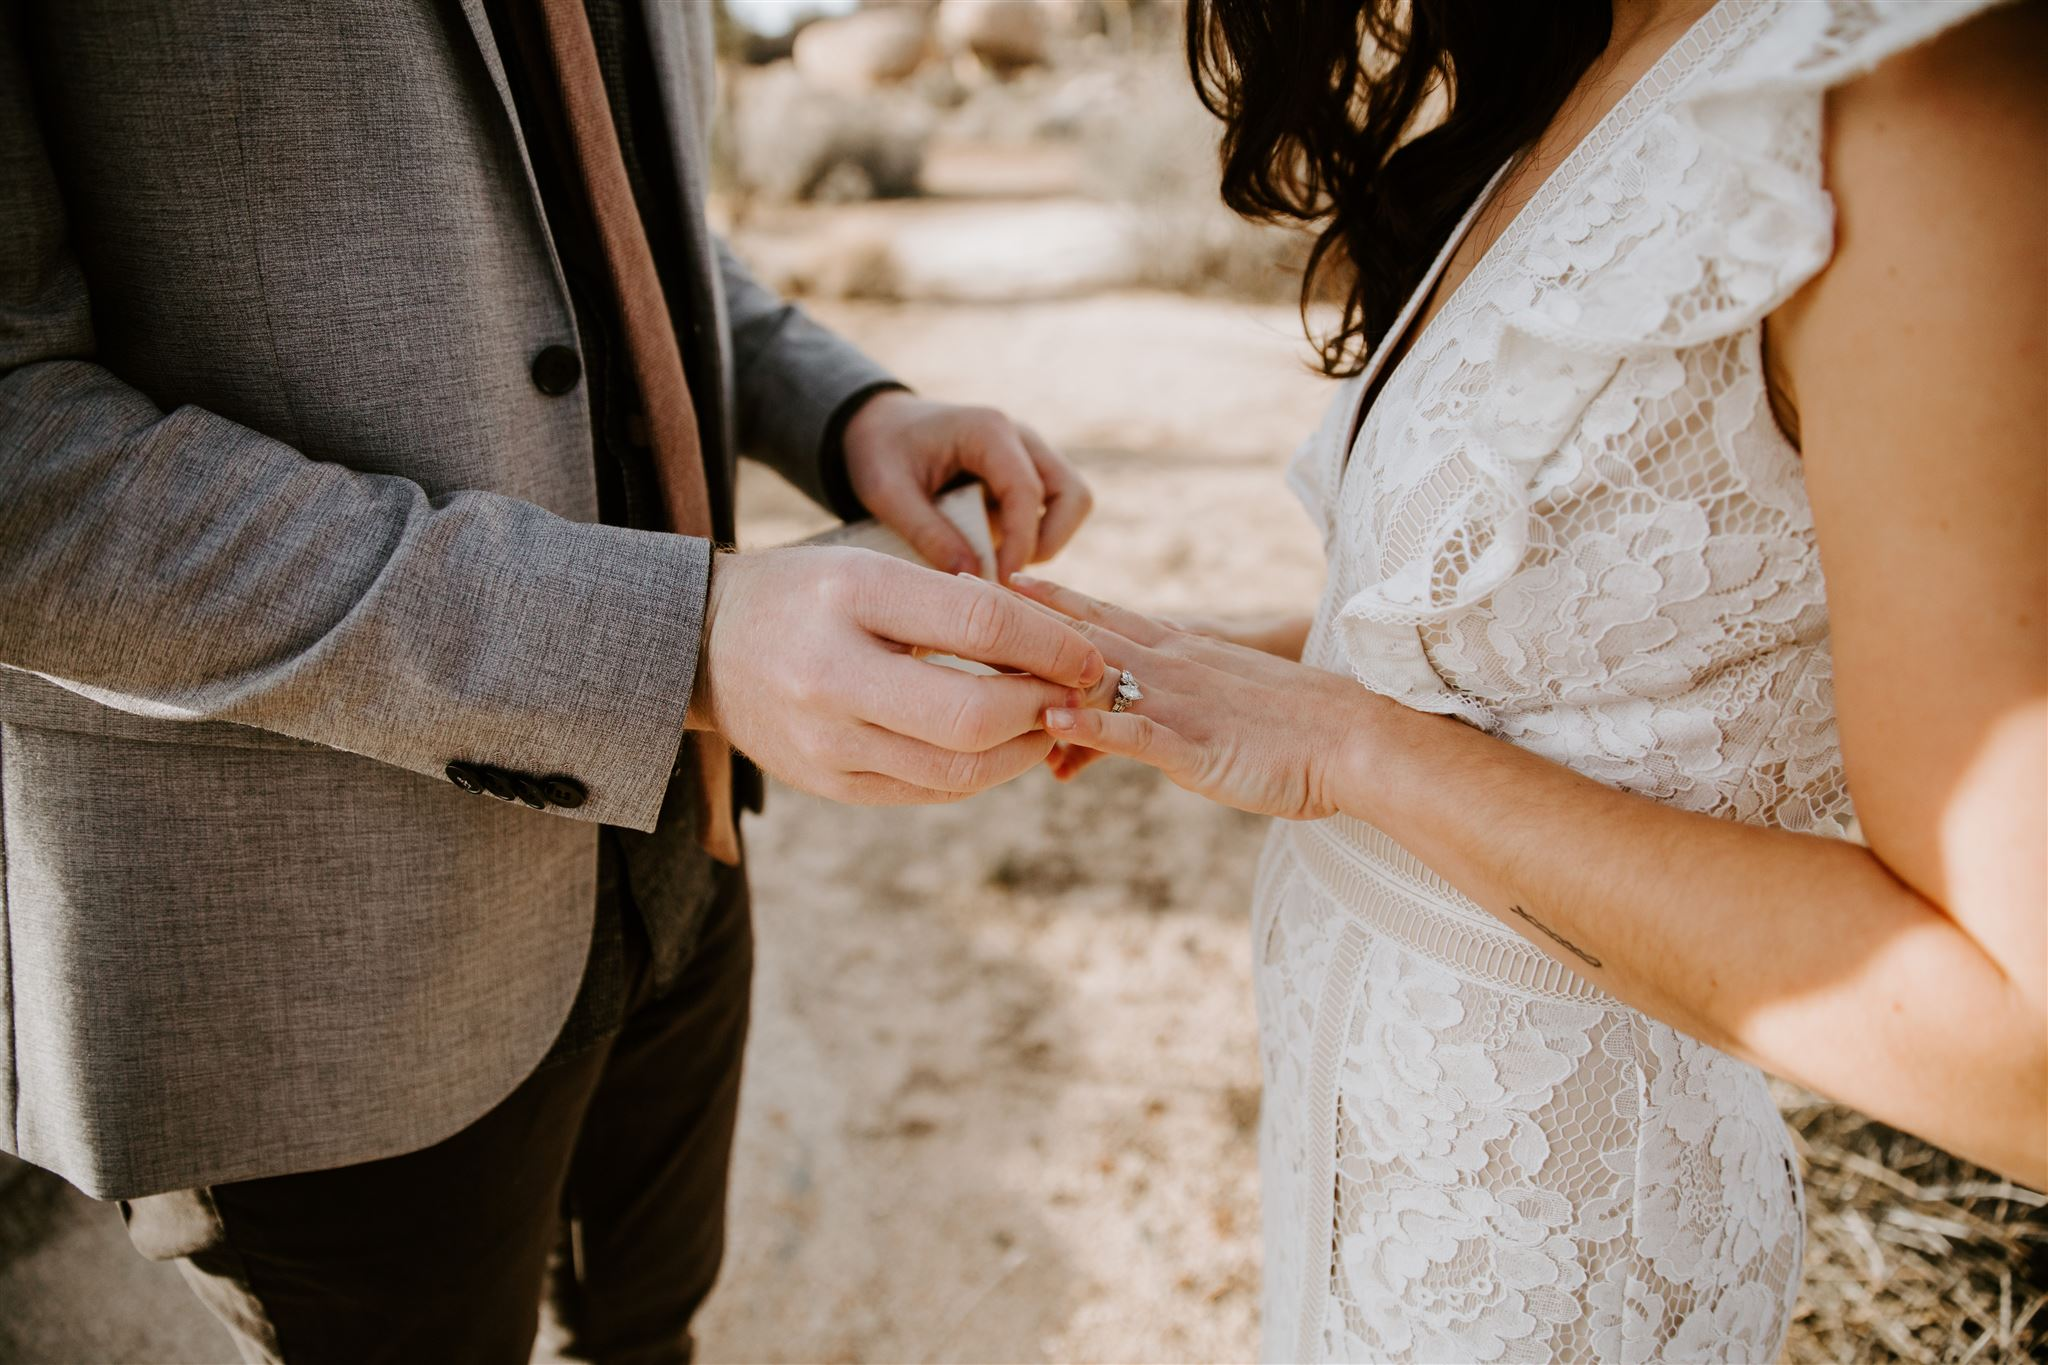 Joshua Tree CA Elopement Wedding  Photographer May Iosotaluno 44.jpg